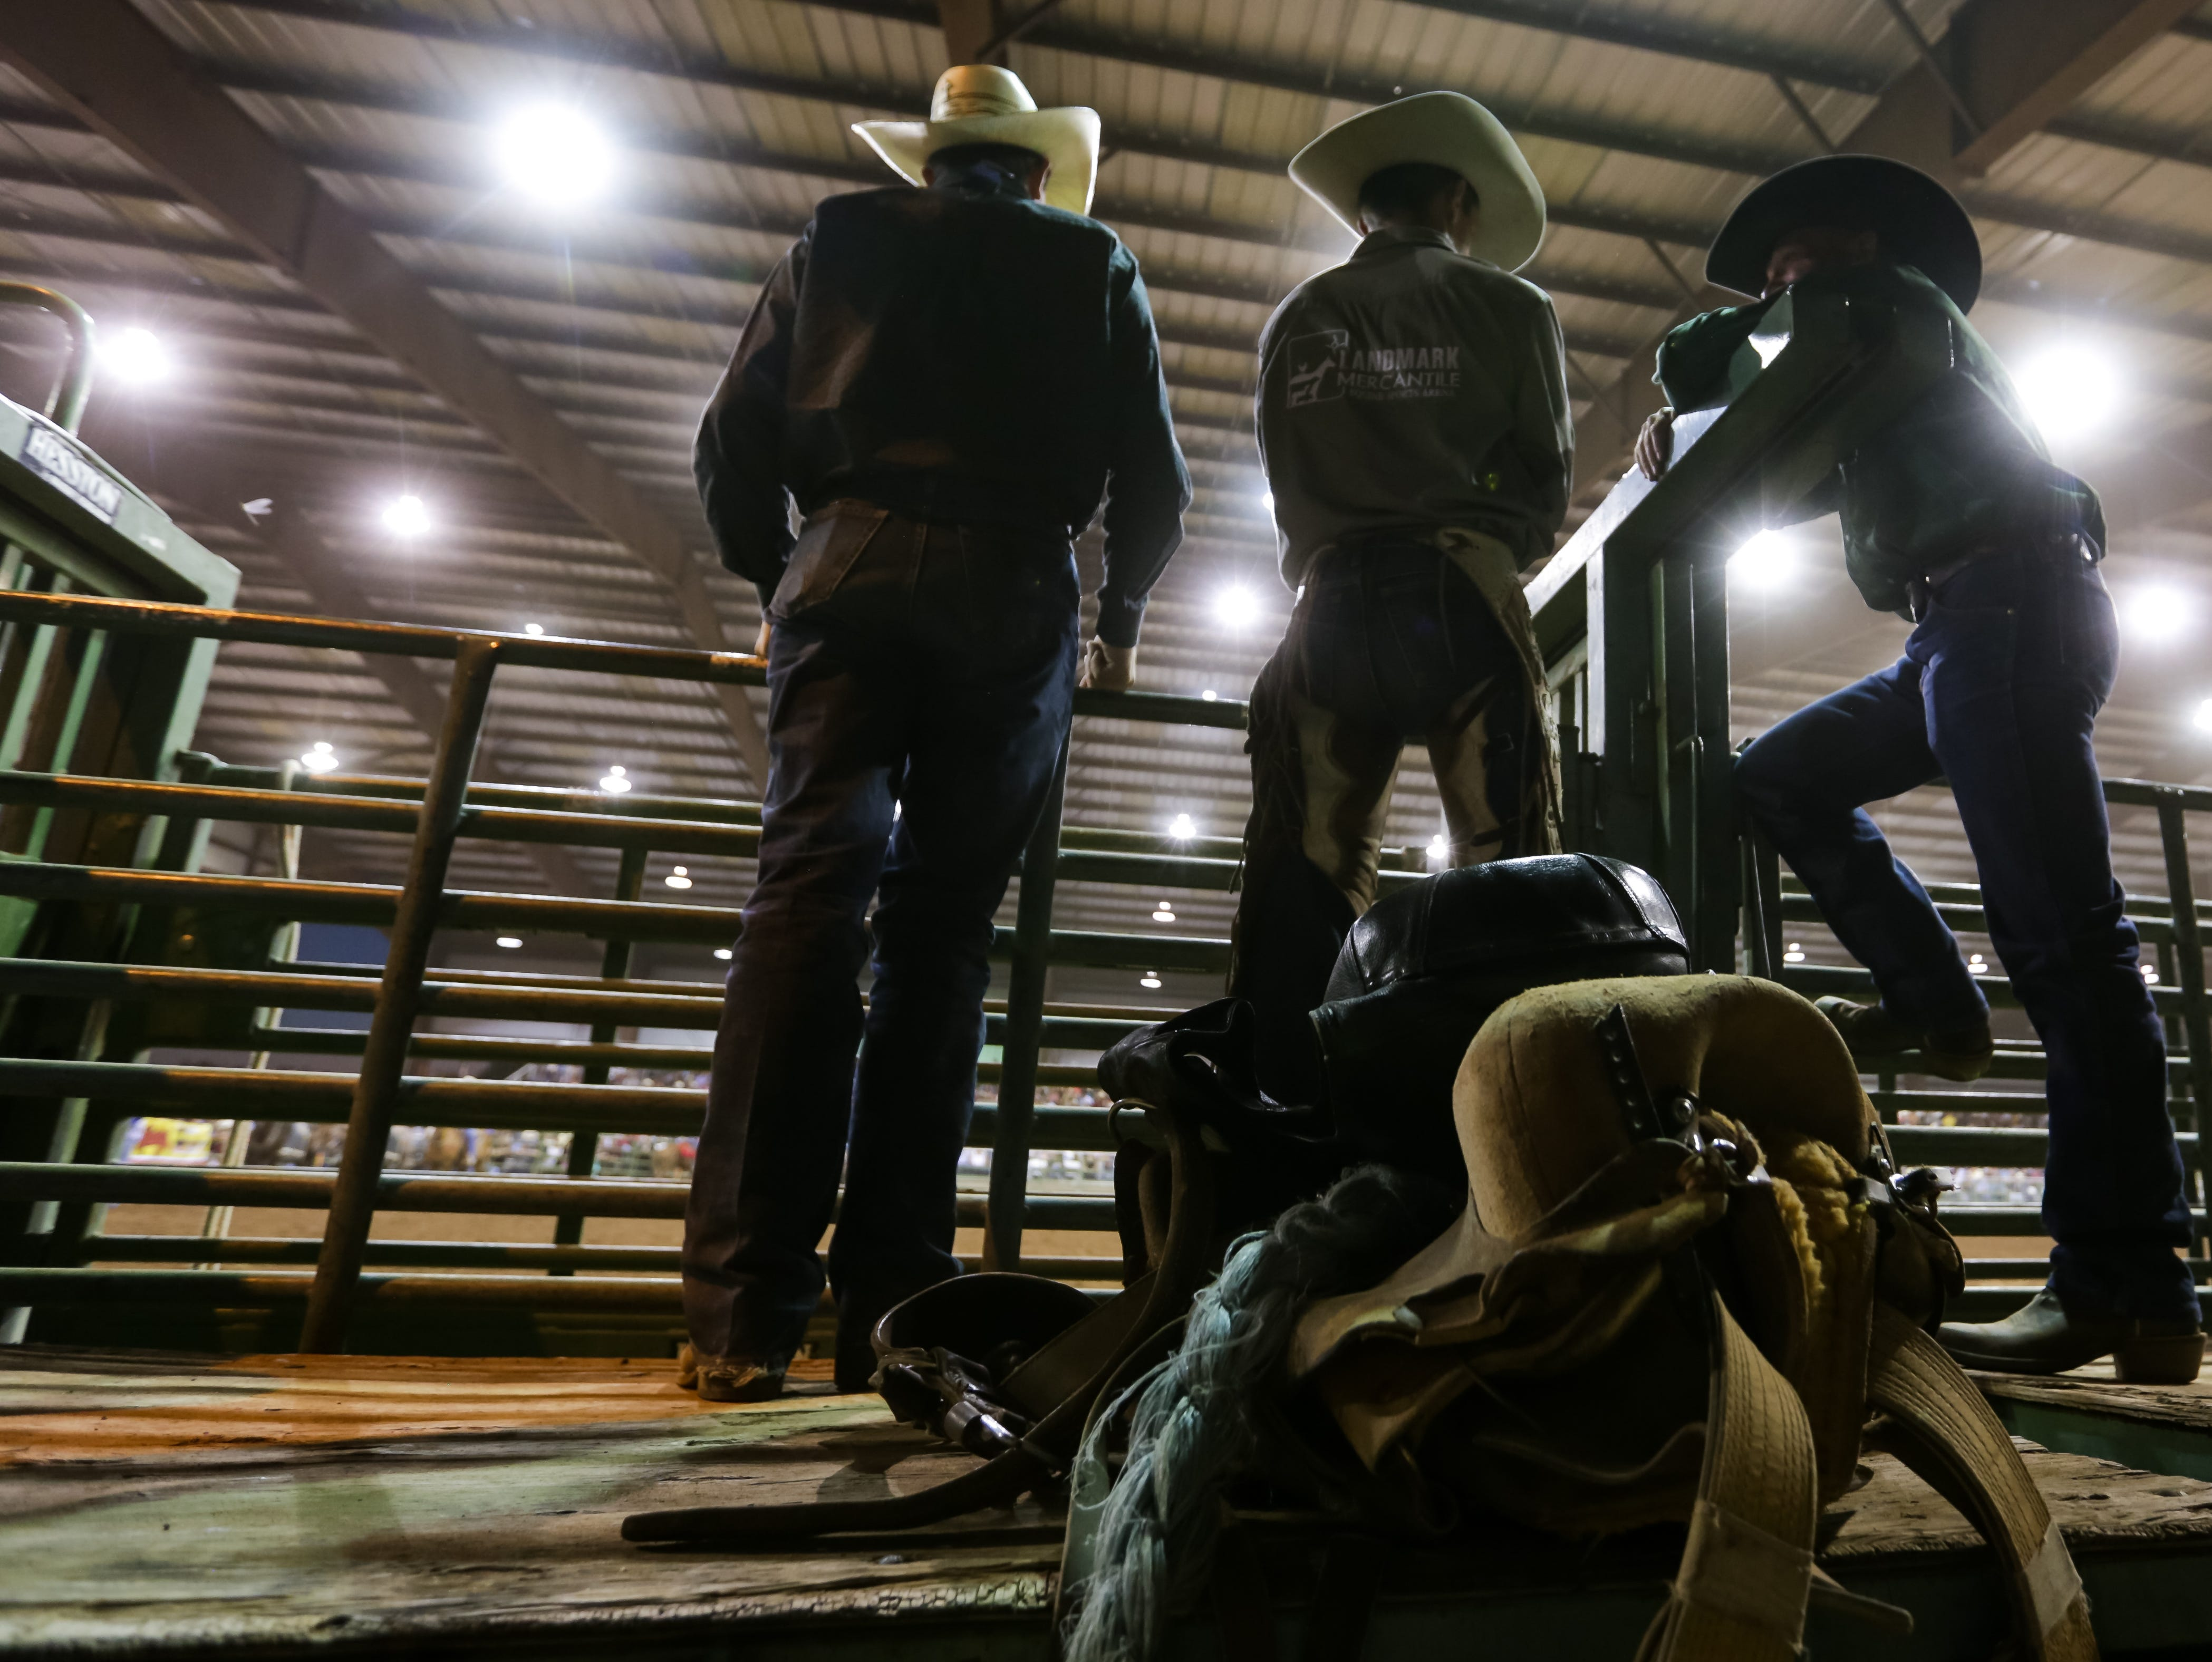 Cowboys watch the events in the Pete V. Domenici Arena on Saturday, Sept. 29, 2018, during the Southern New Mexico State Fair & Rodeo at the Southern New Mexico State Fairgrounds.